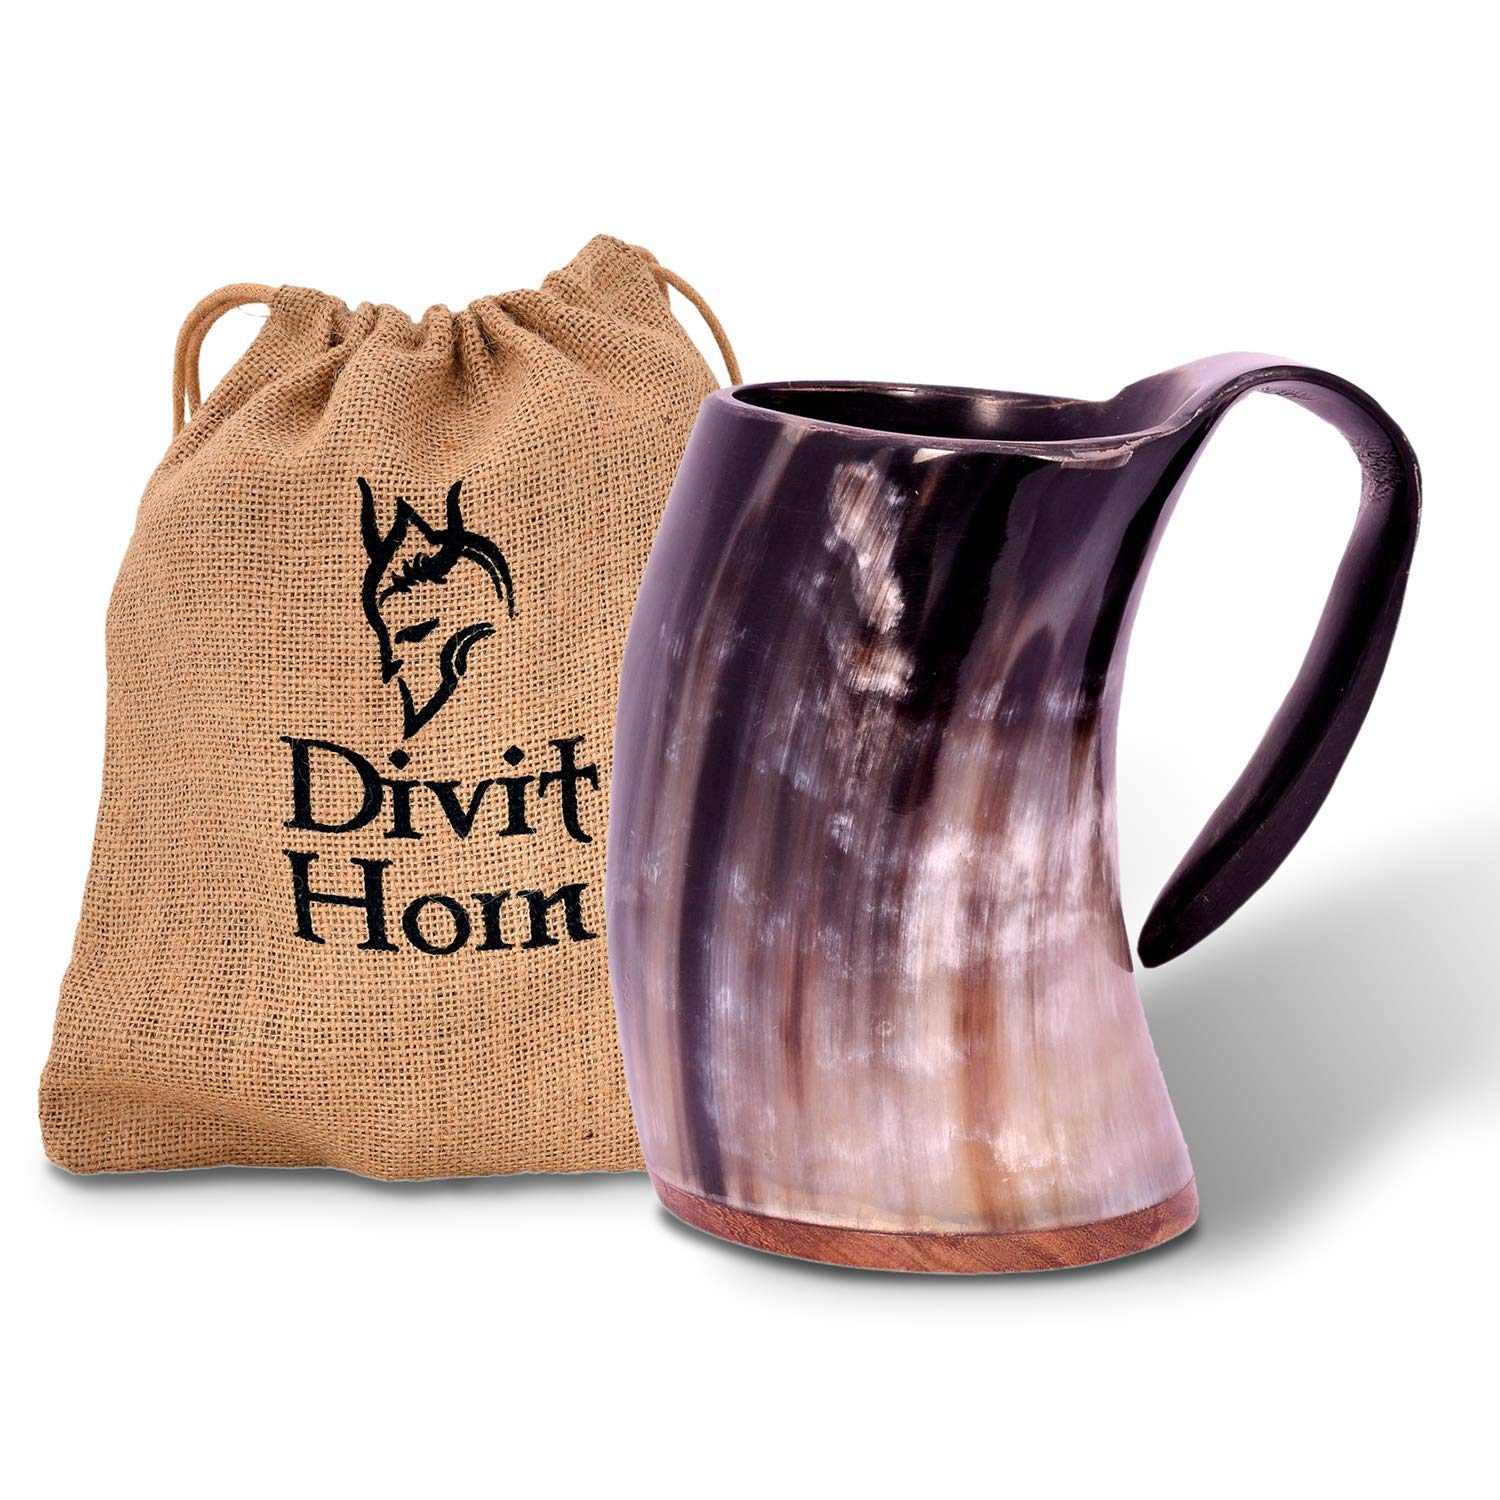 Divit Genuine Viking Drinking Horn Mug | Authentic Medieval Beer Horn Tankard | 24oz capacity | Highest quality horn Cup/Stein. (Original, Polished)